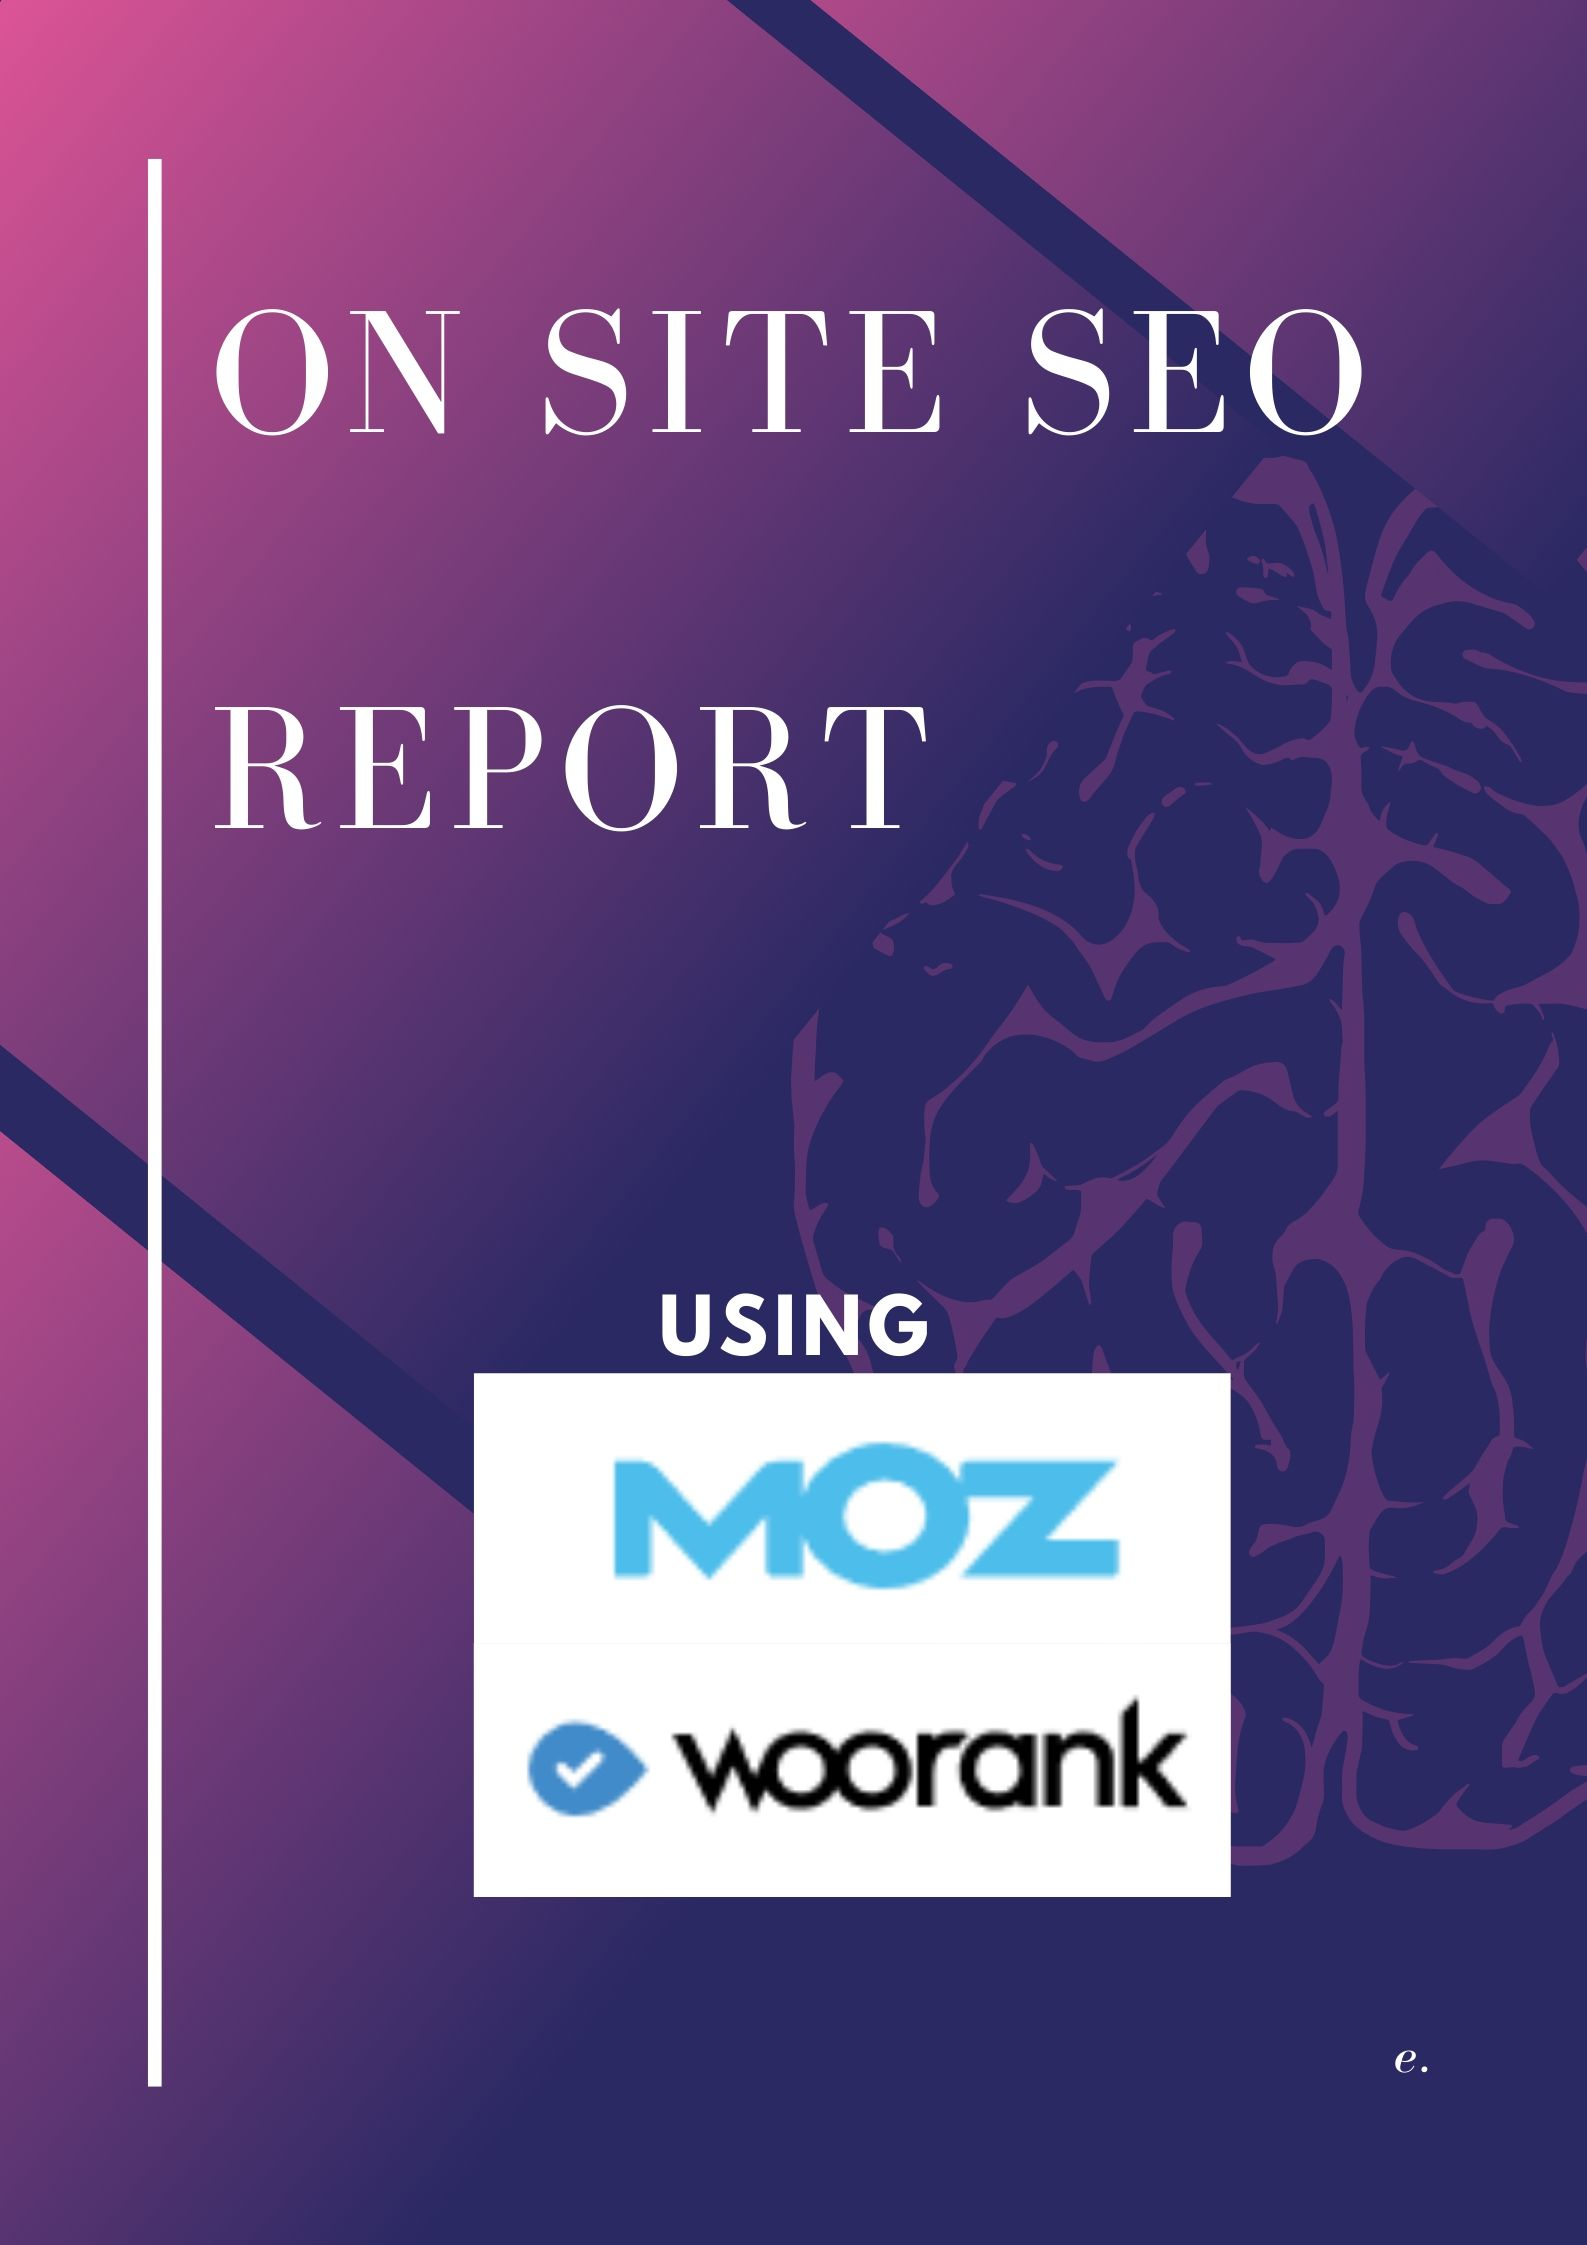 provide you On Site Seo report for your website using premium MOZ Woorank